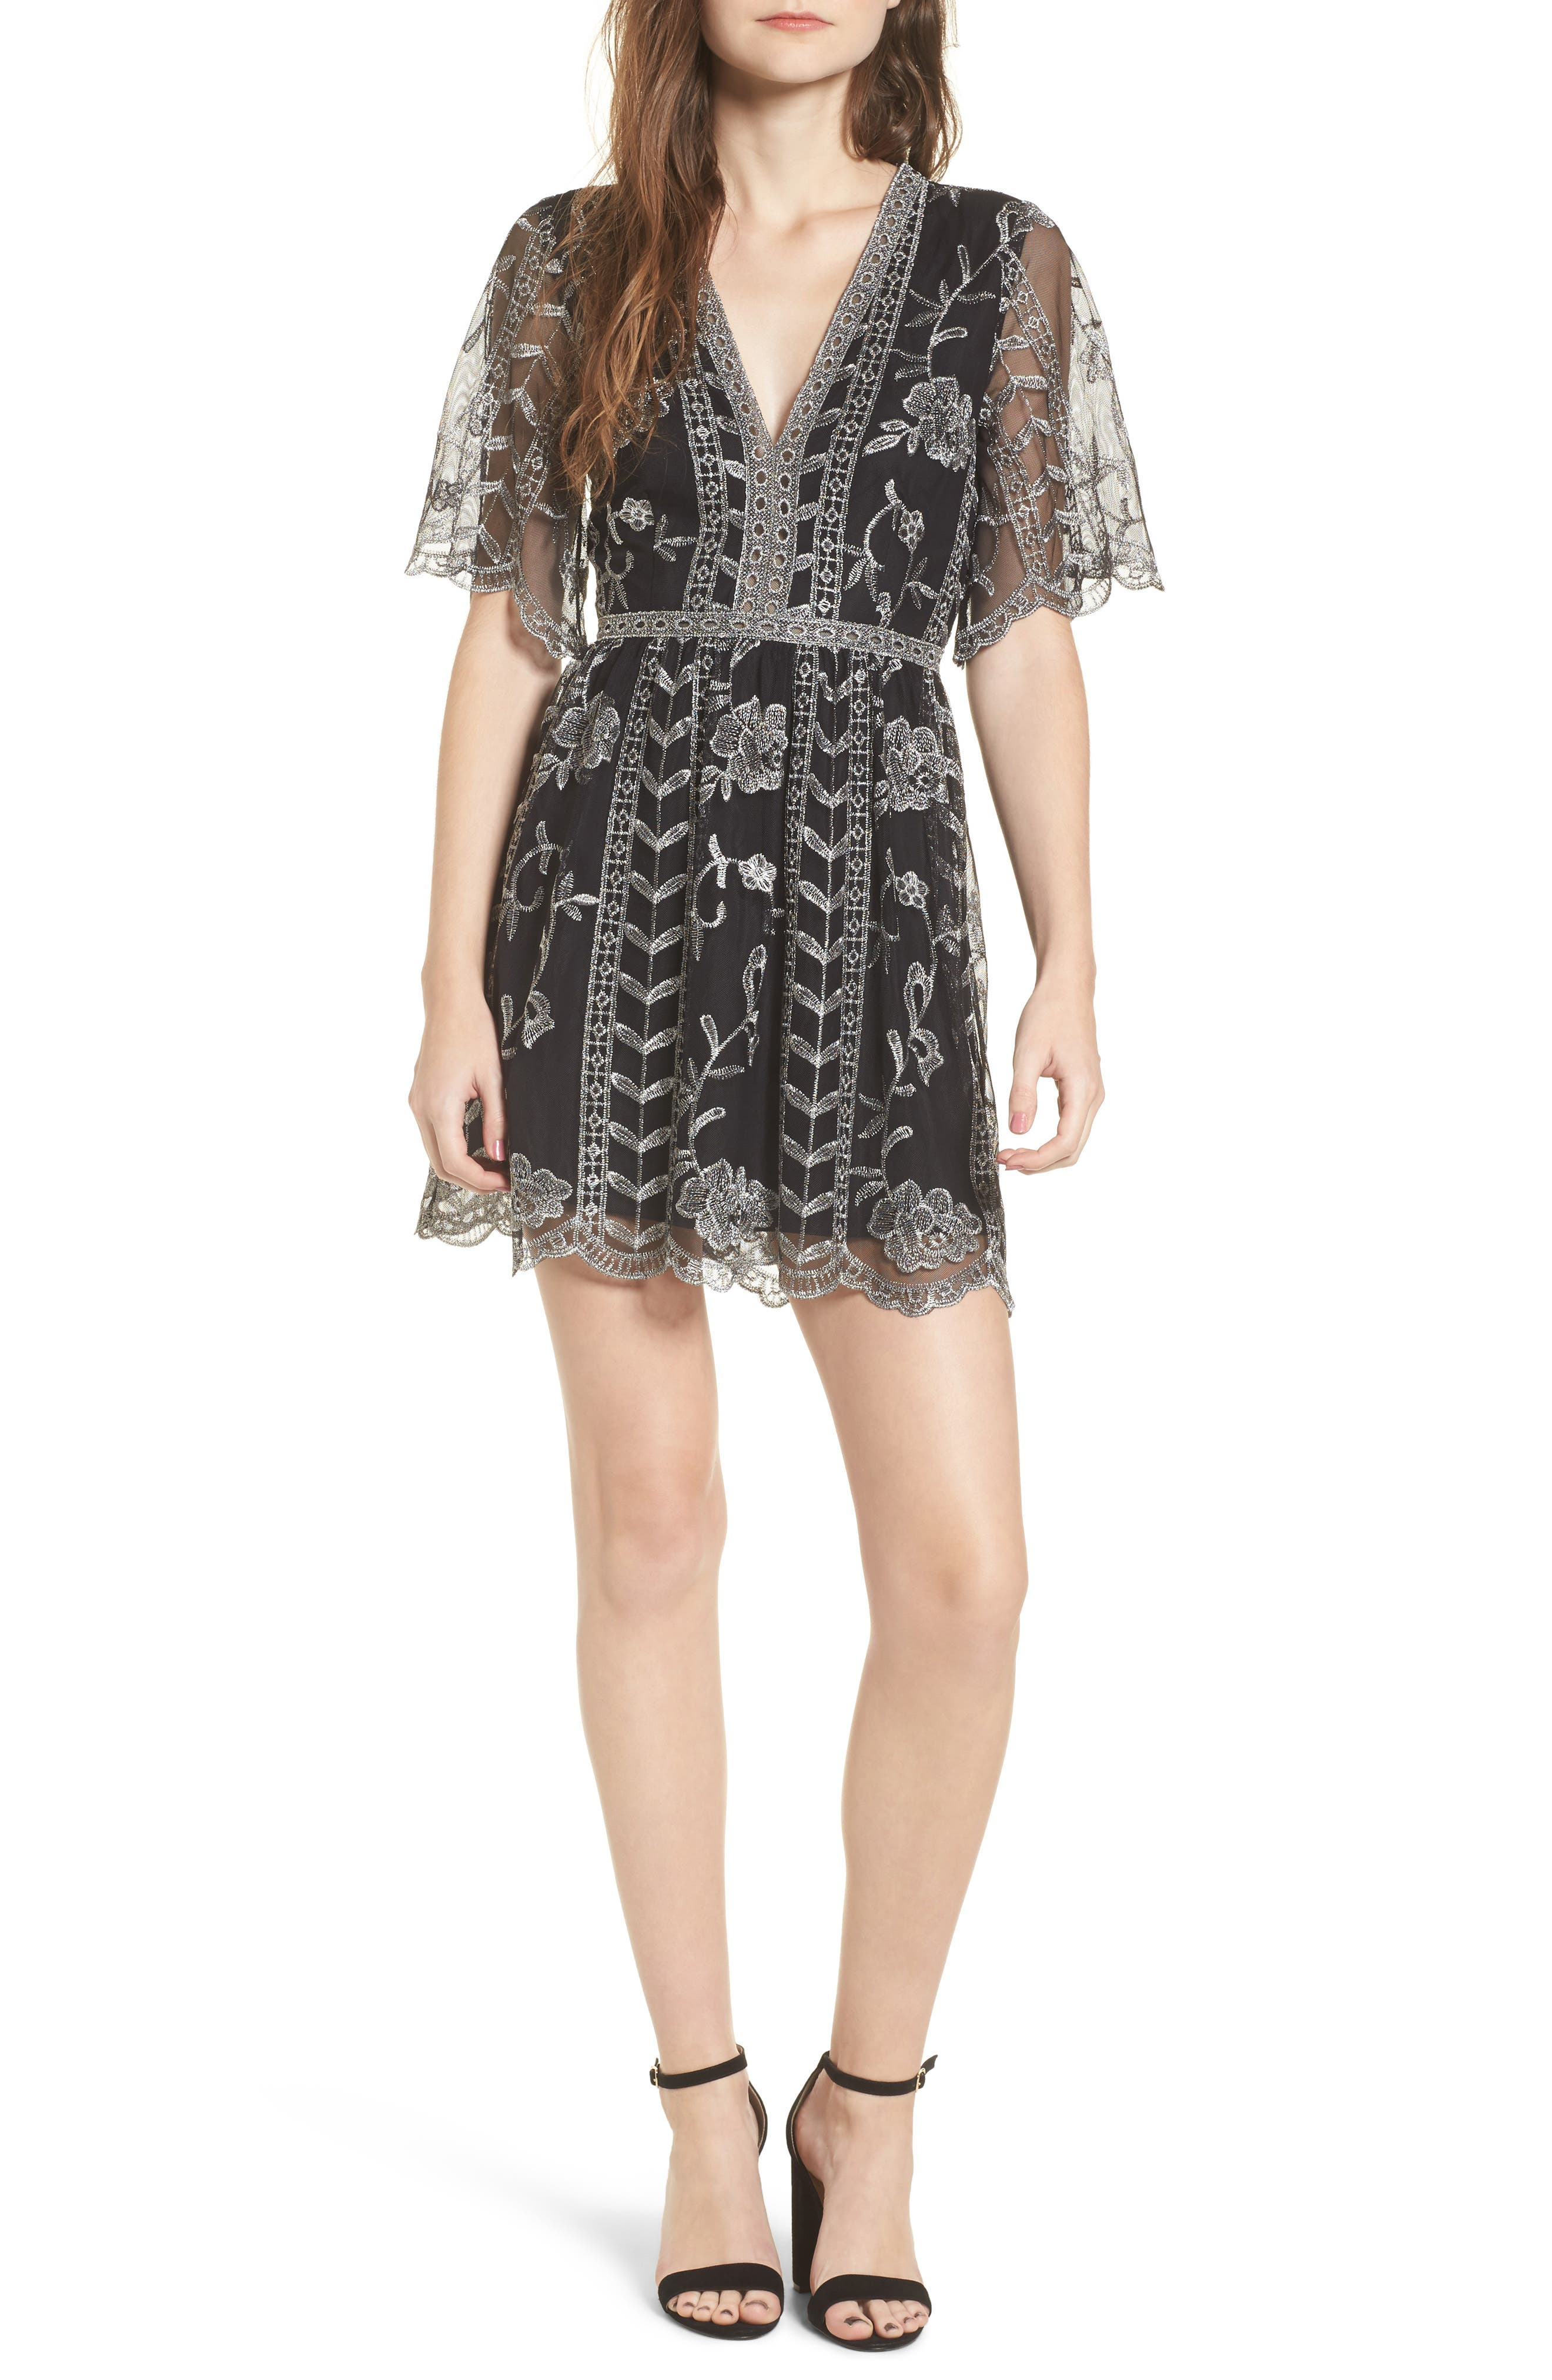 Socialite Plunging Lace Dress